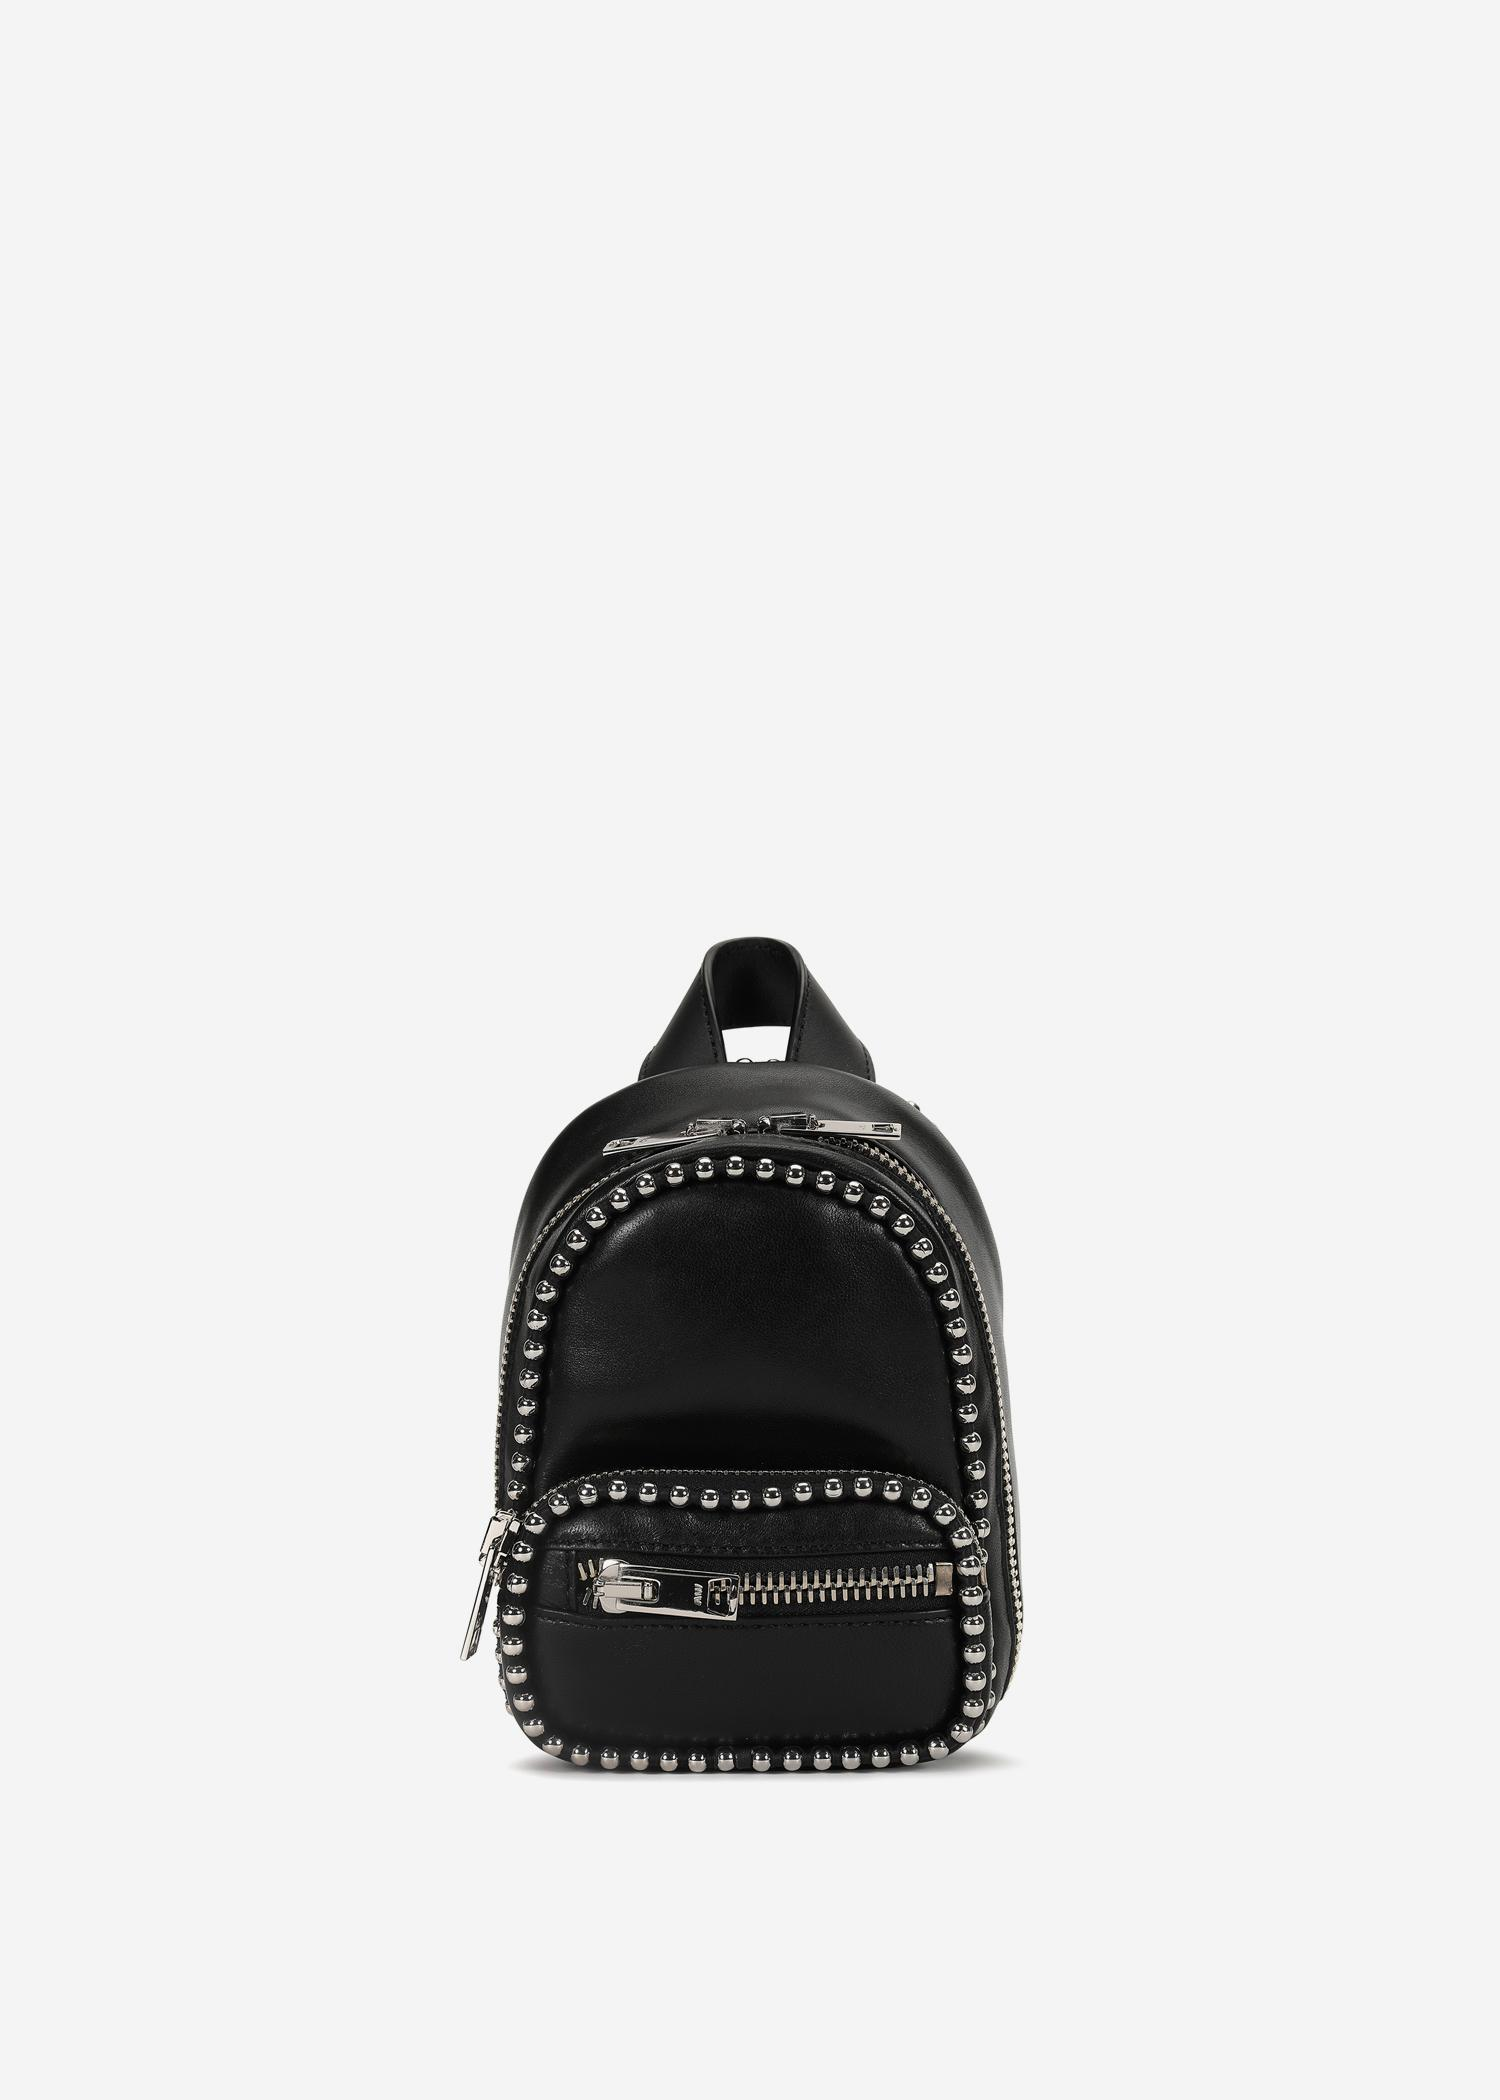 d5626e2d6a09f Alexander Wang Attica Soft Mini Backpack Crossbody In Black